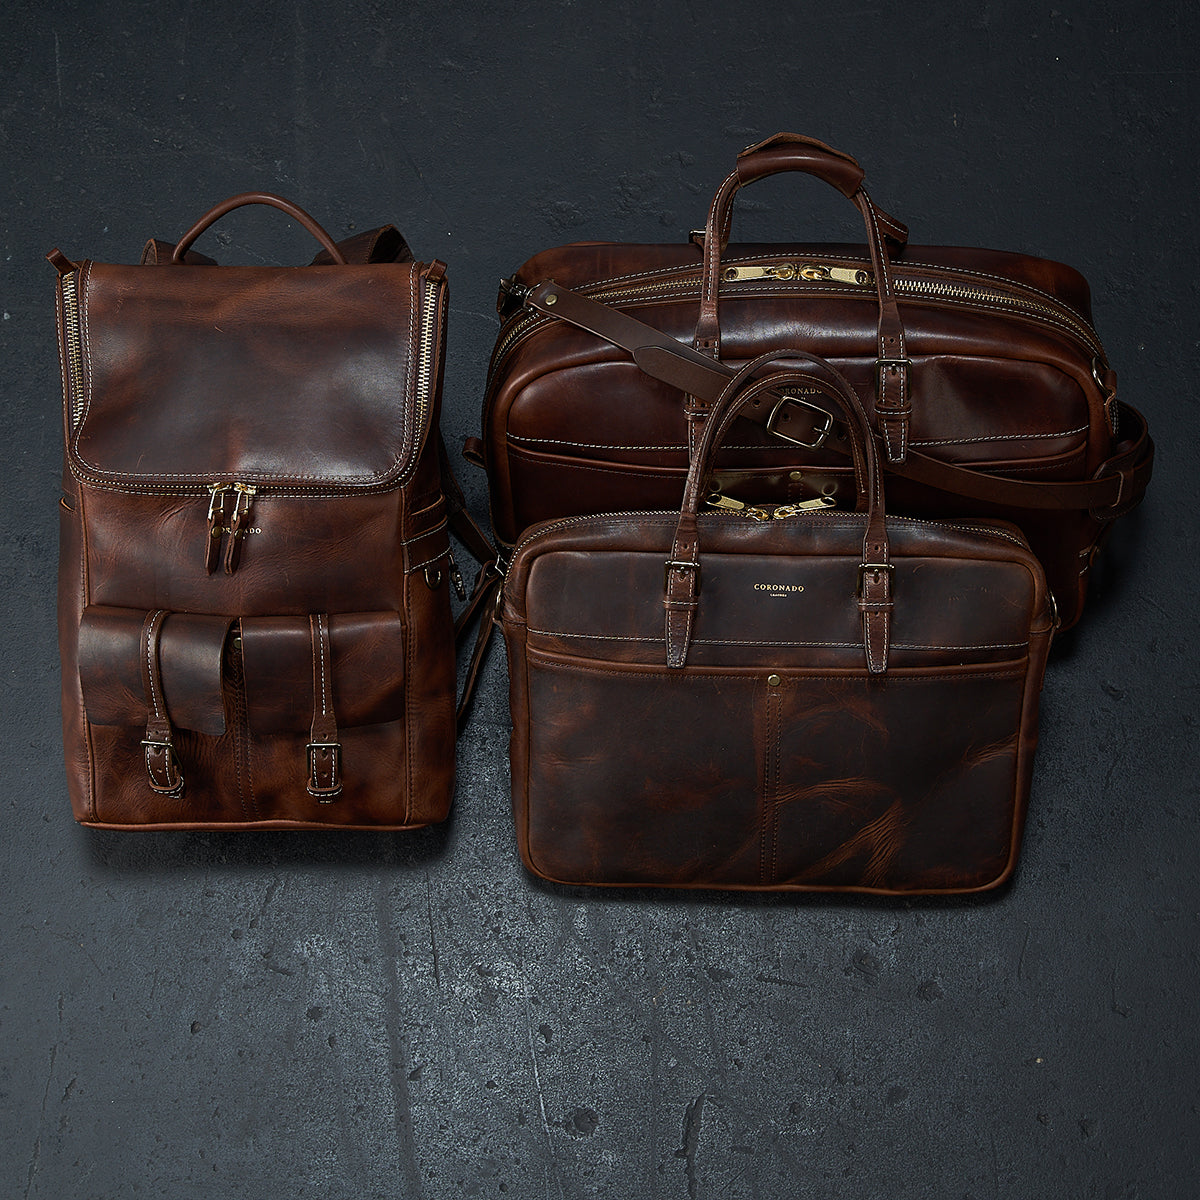 Dublin Duffel No. 930 (Limited Edition)